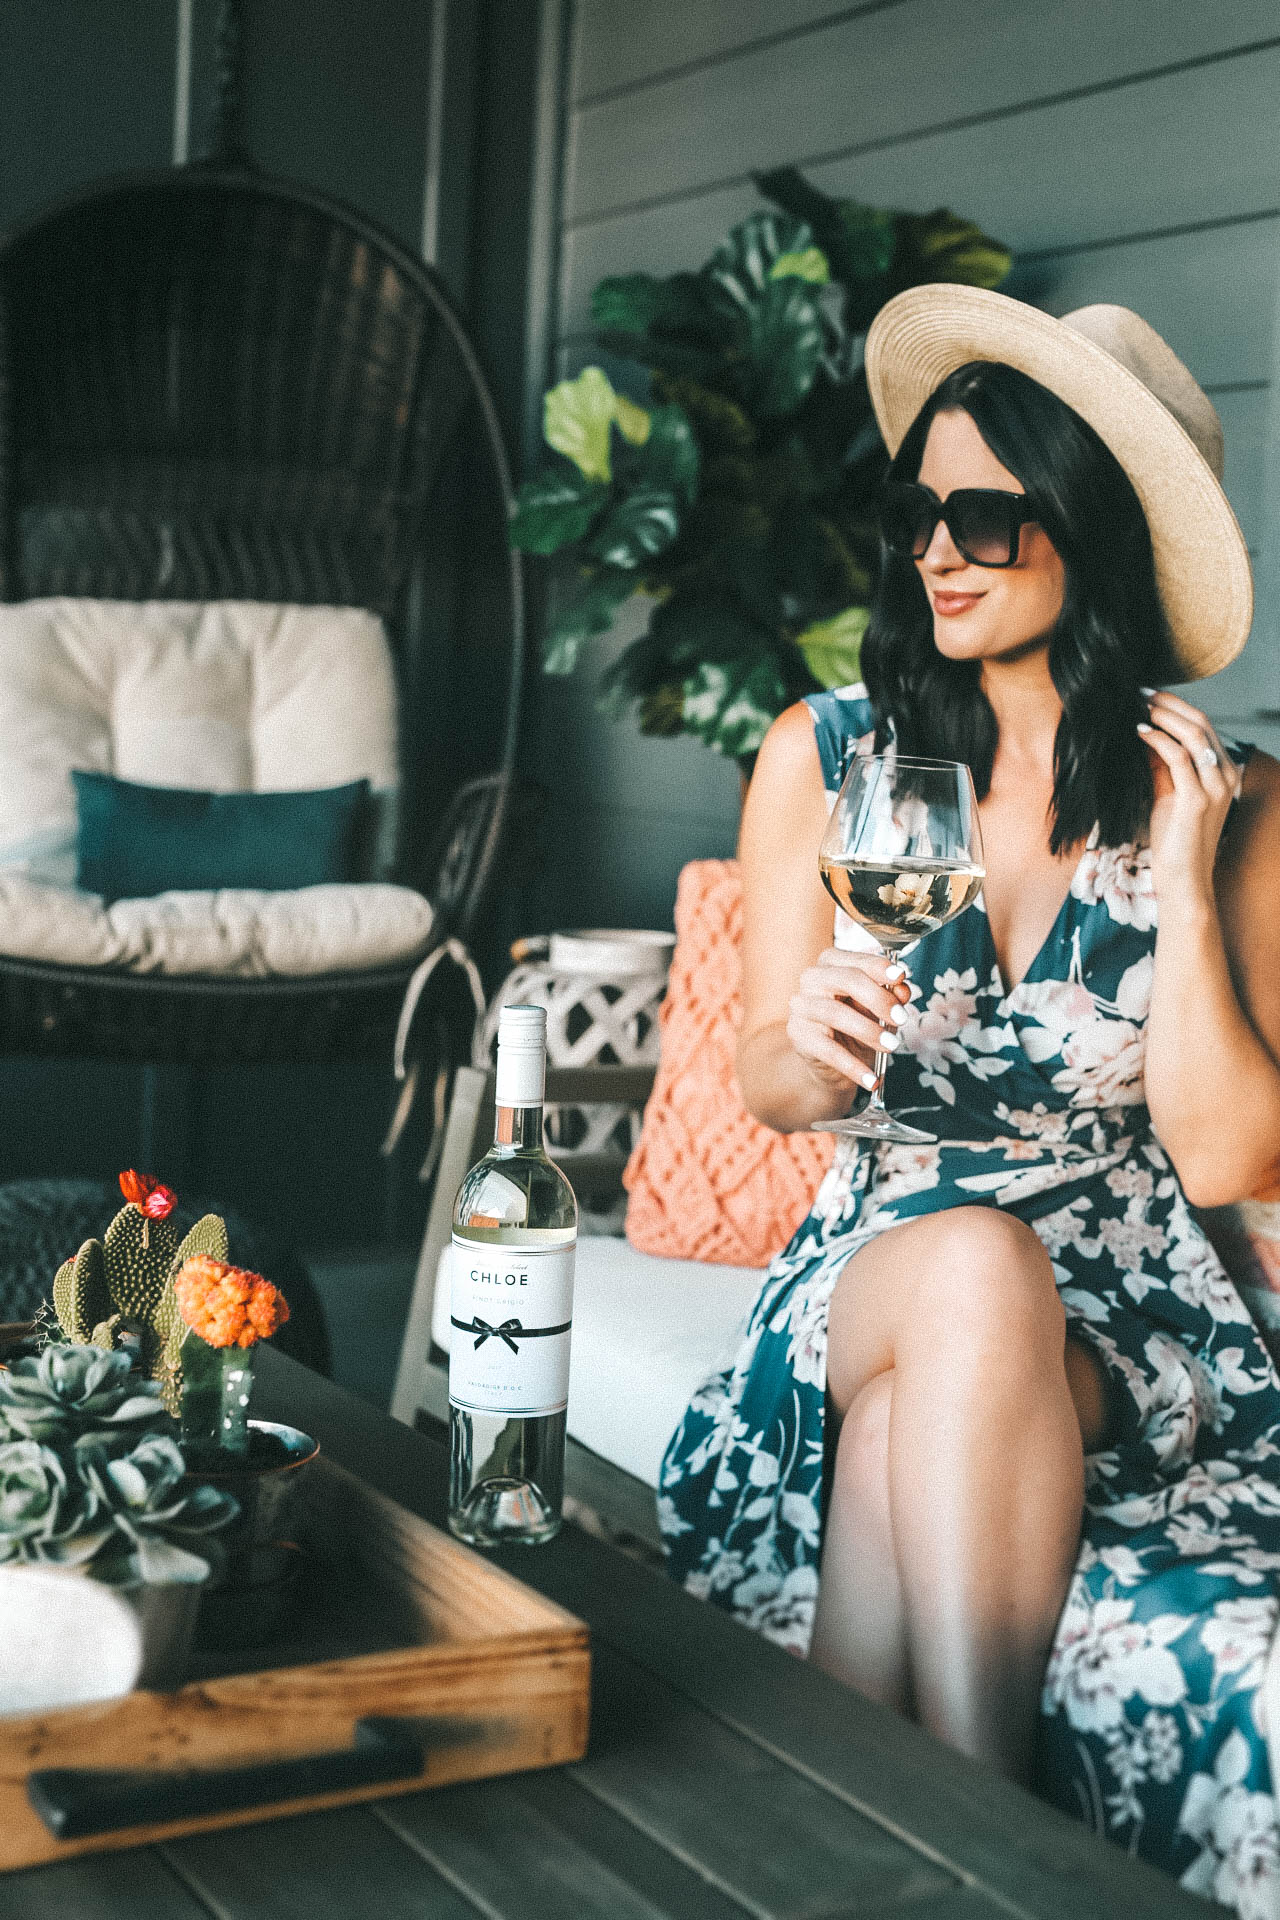 Celebrating Women in Film with Chloe Wine Collection by popular Austin life and style blog, Dressed to Kill: image of a woman sitting outside on her patio next to a bottle of Chloe pinot grigio wine and holding a wine glass in her hand that's half full with the same wine.